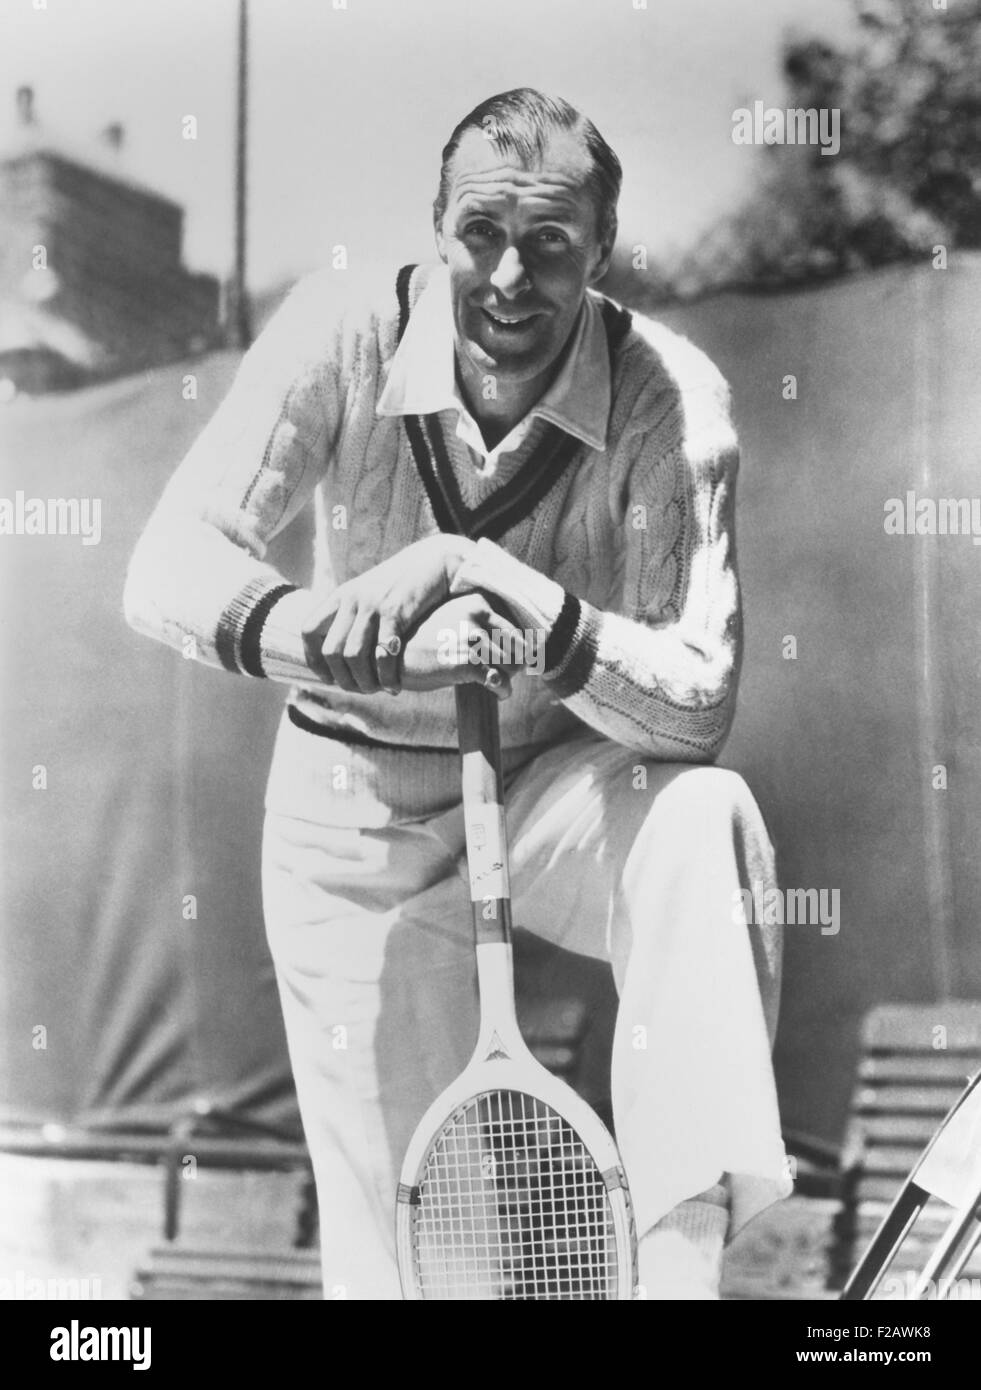 Bill Tilden former Tennis Champion ca 1940 As he phased out of